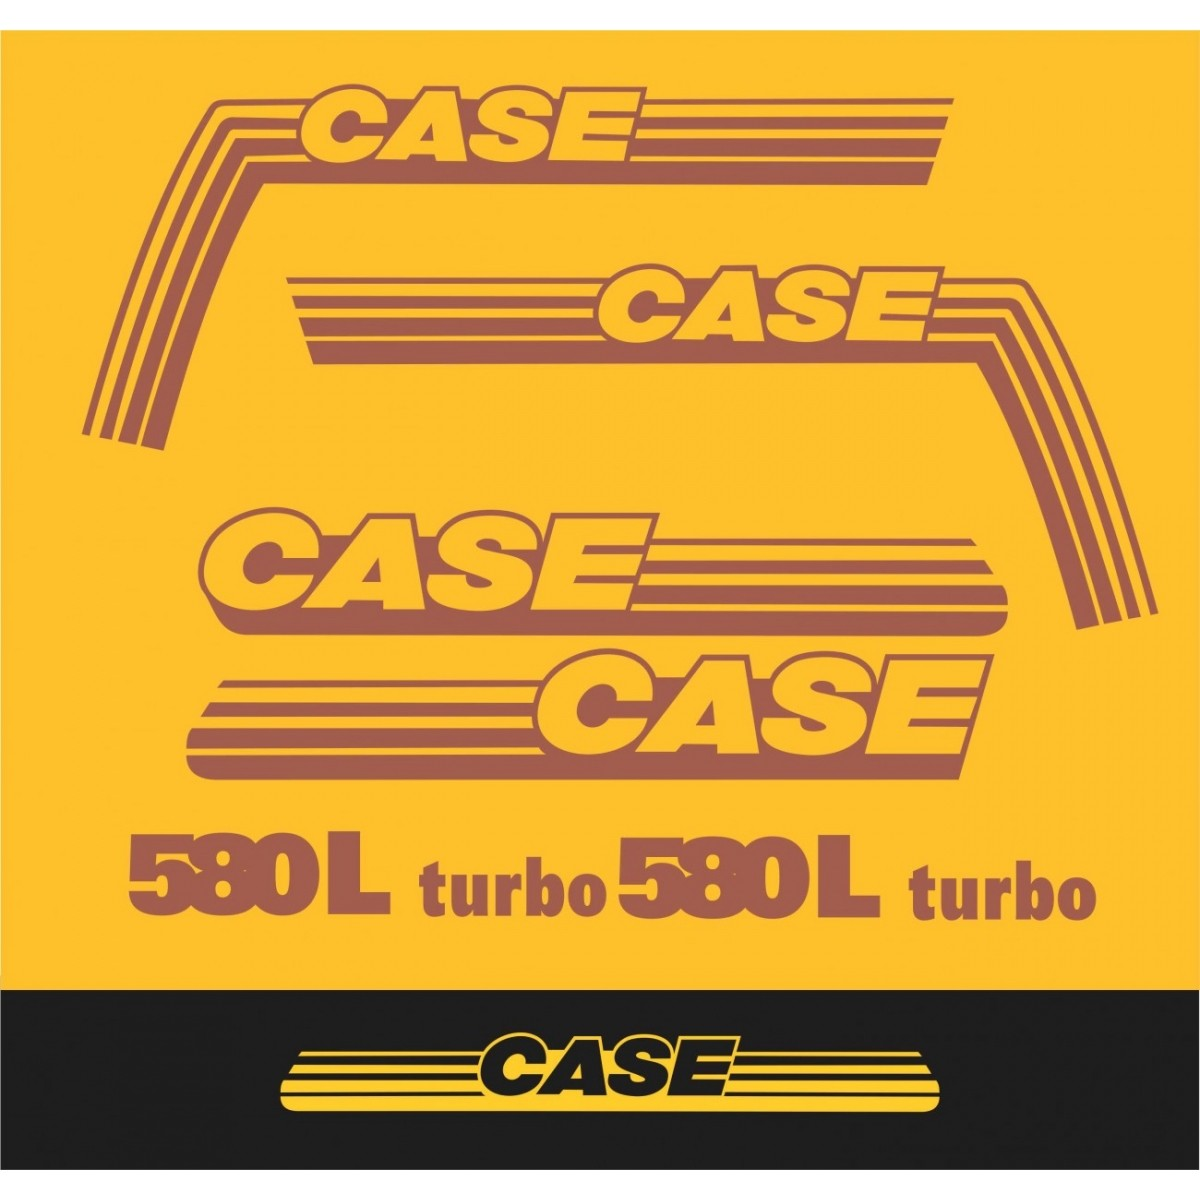 Kit Adesivos Case 580l Turbo - Decalx